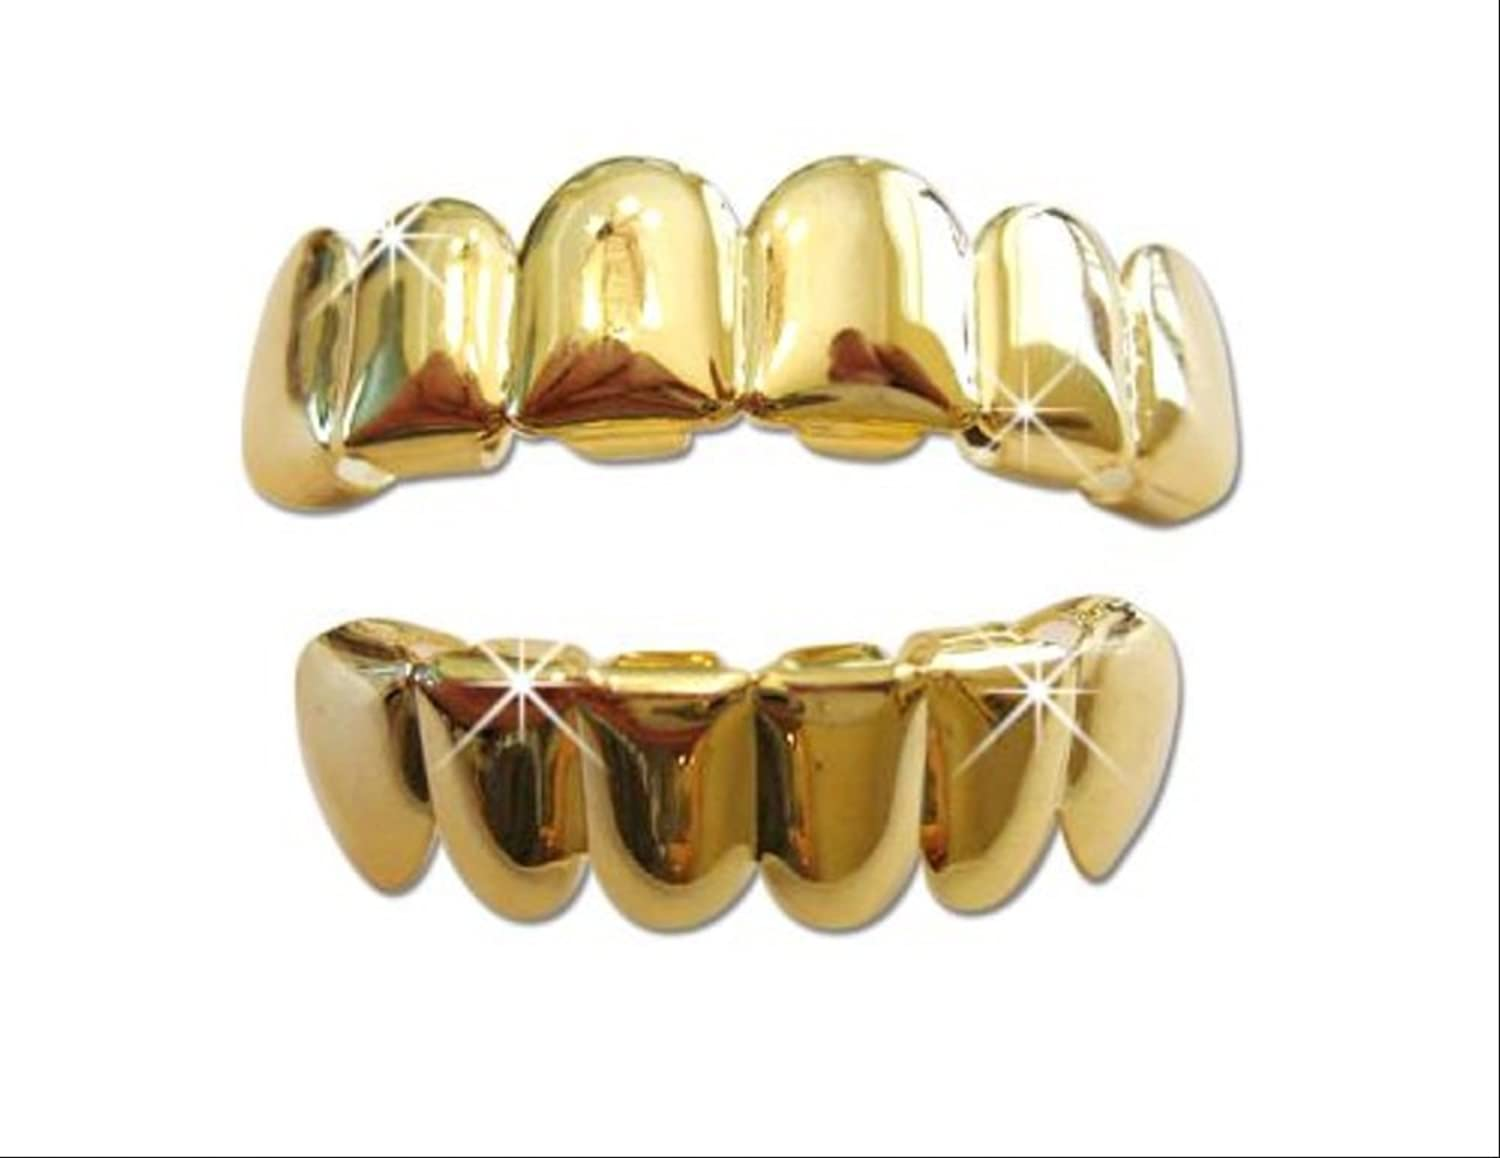 Top Row Grillz Grillz Set Top Bottom